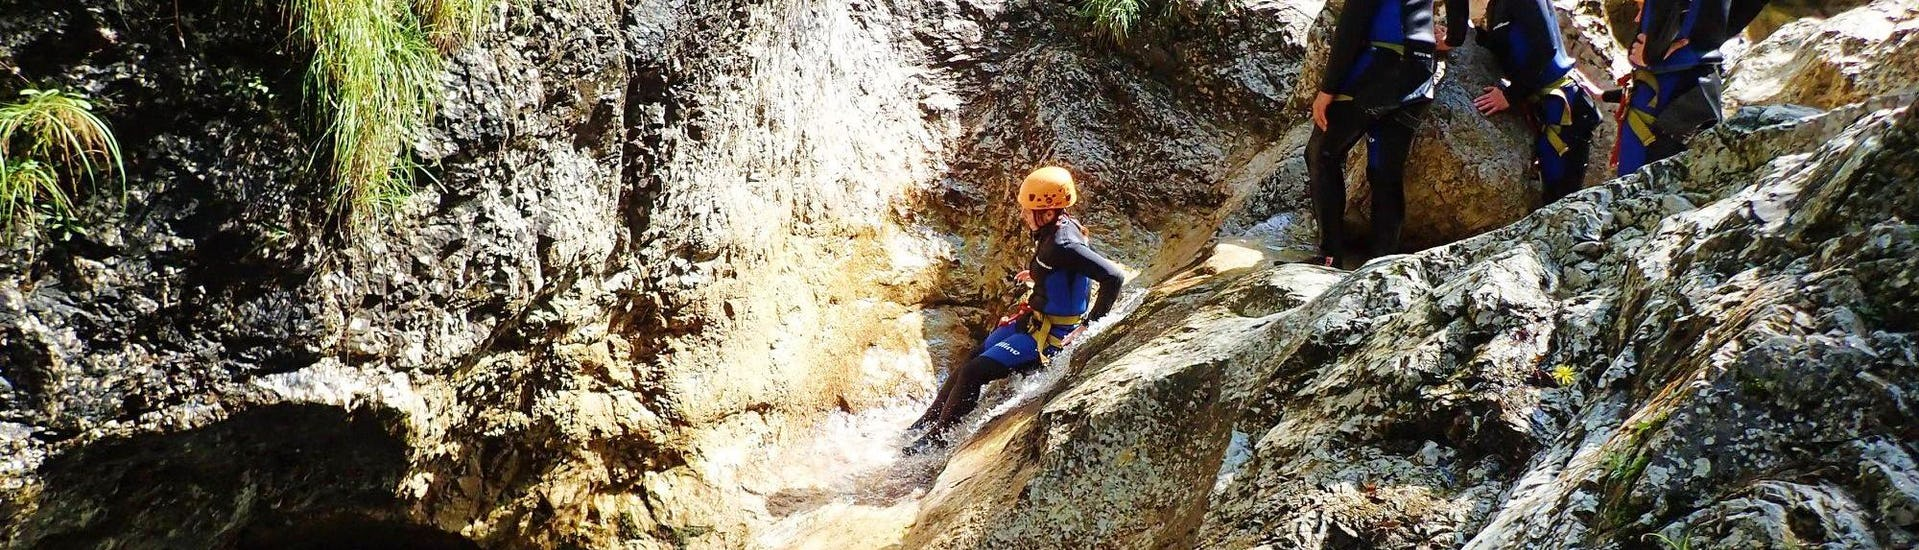 canyoning-in-the-susec-gorge-soca-rafting